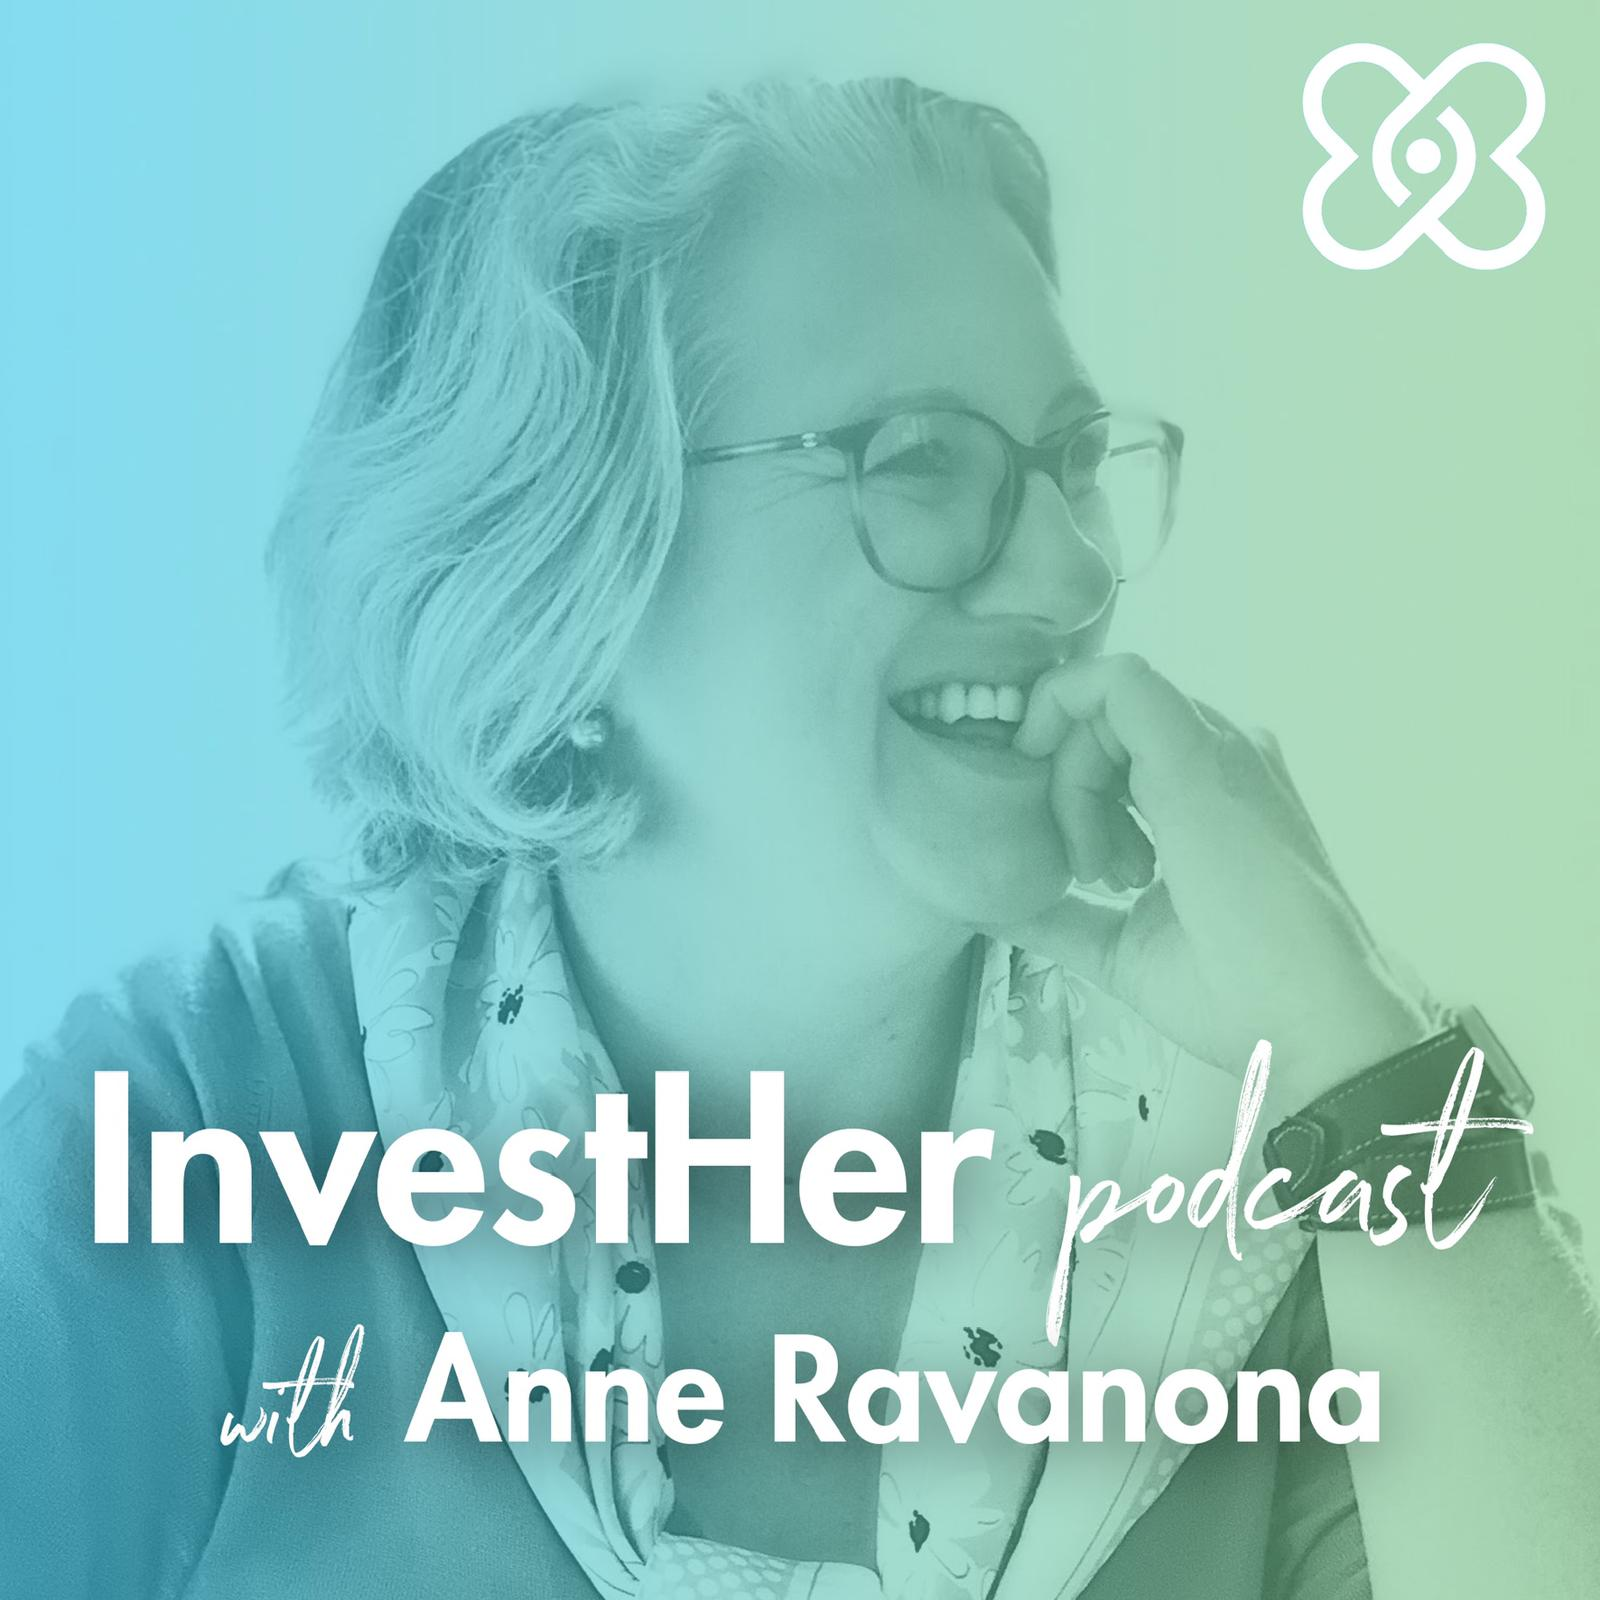 InvestHer Podcast show art